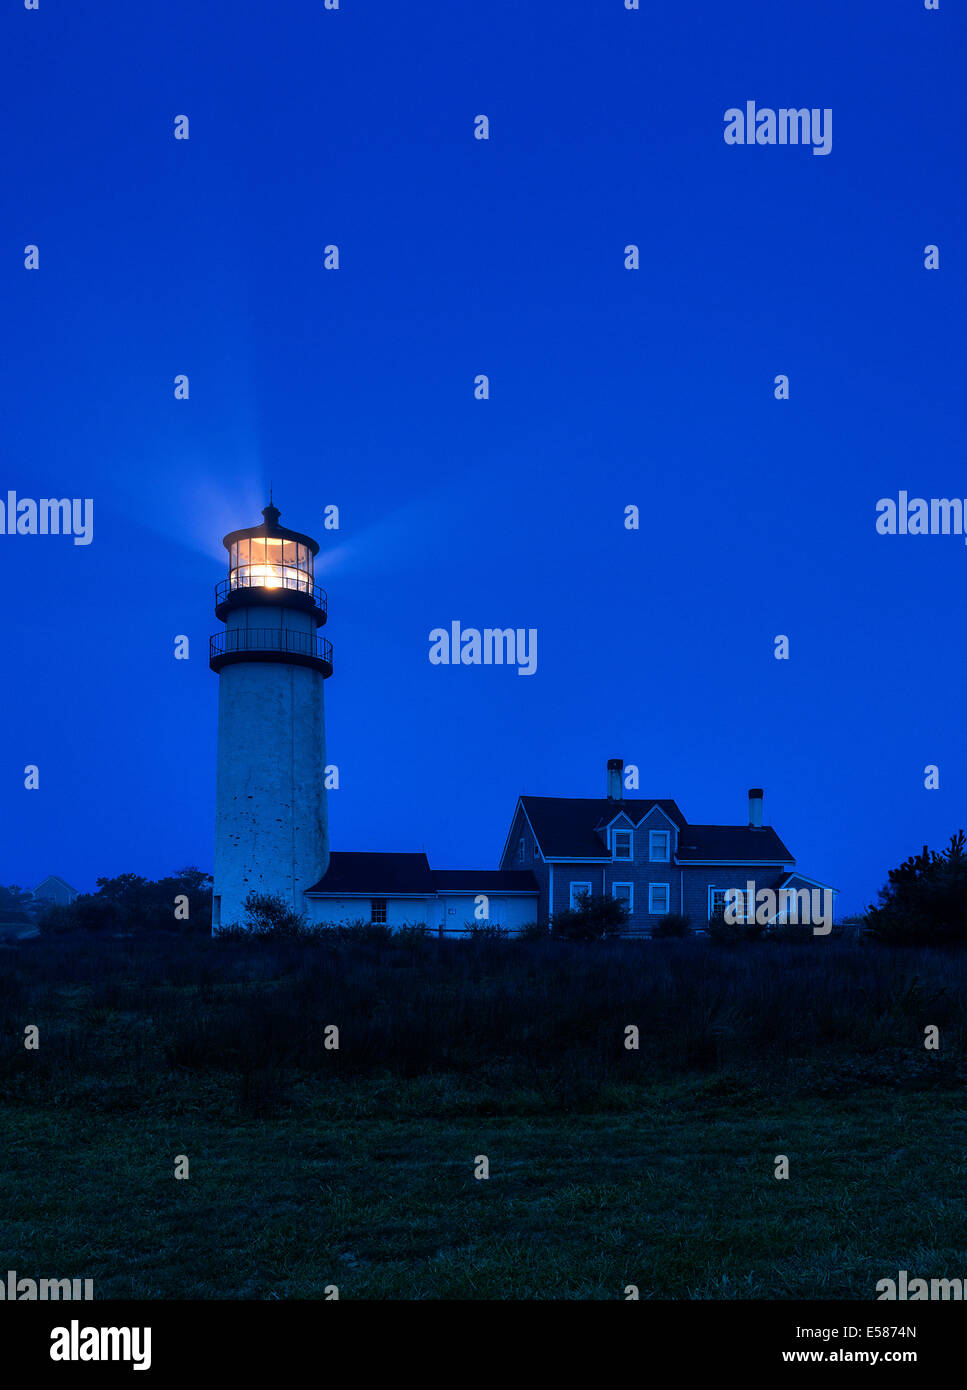 Lighthouse casts guiding light into dark blue night, - Stock Image